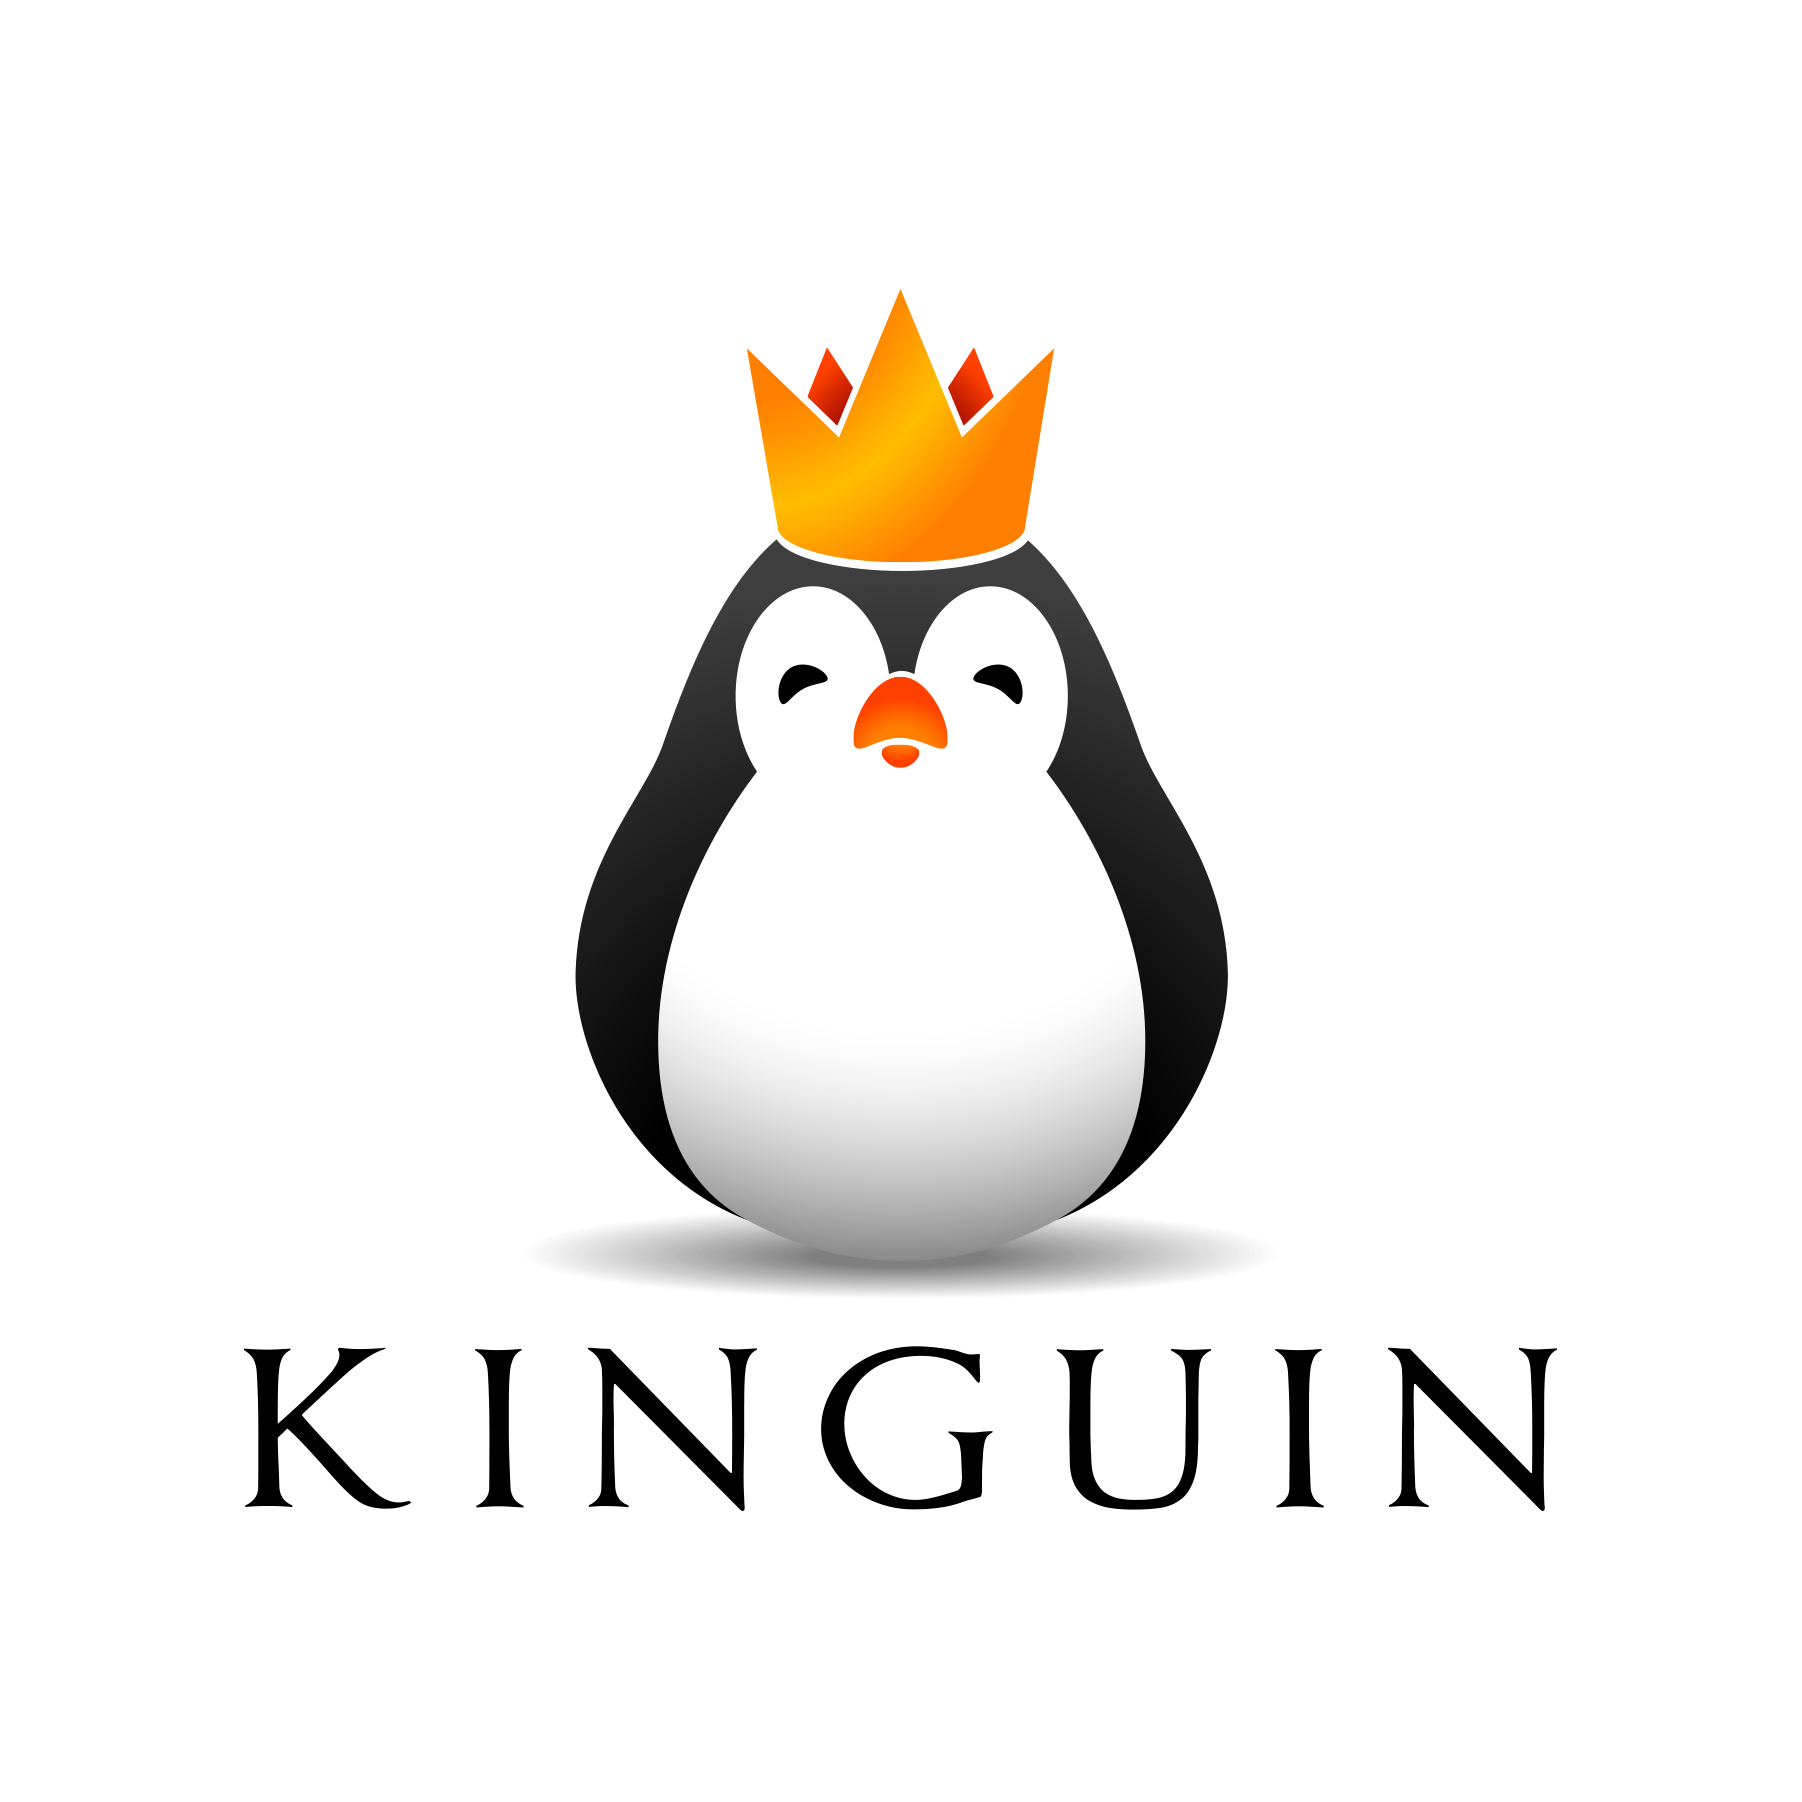 KinguinNetpng